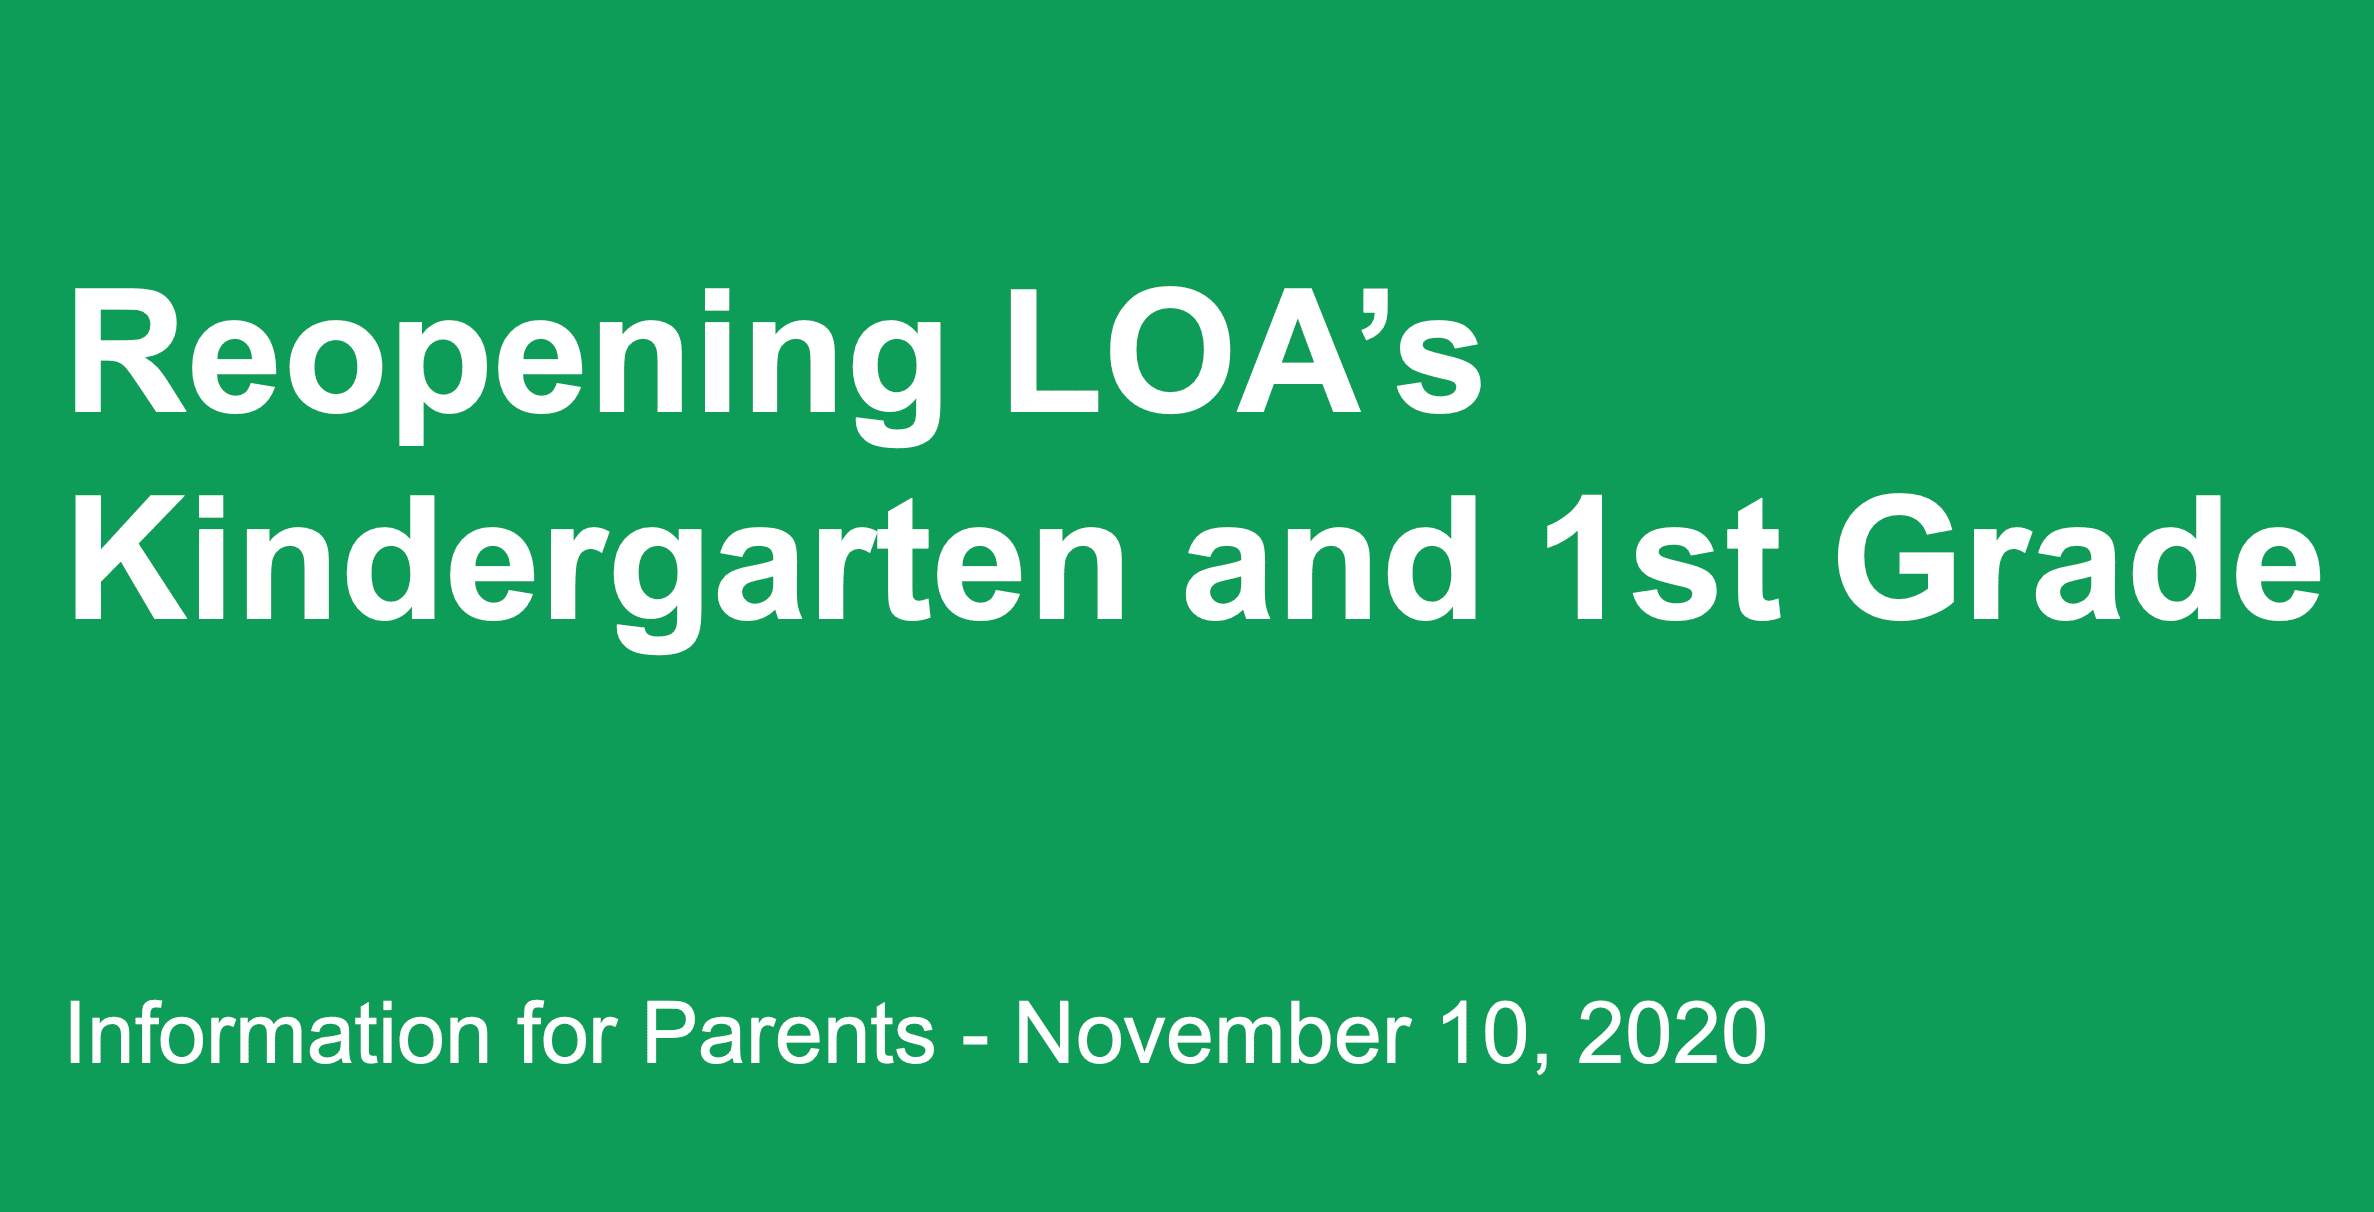 Reopening LOA's Kindergarten and 1st Grade